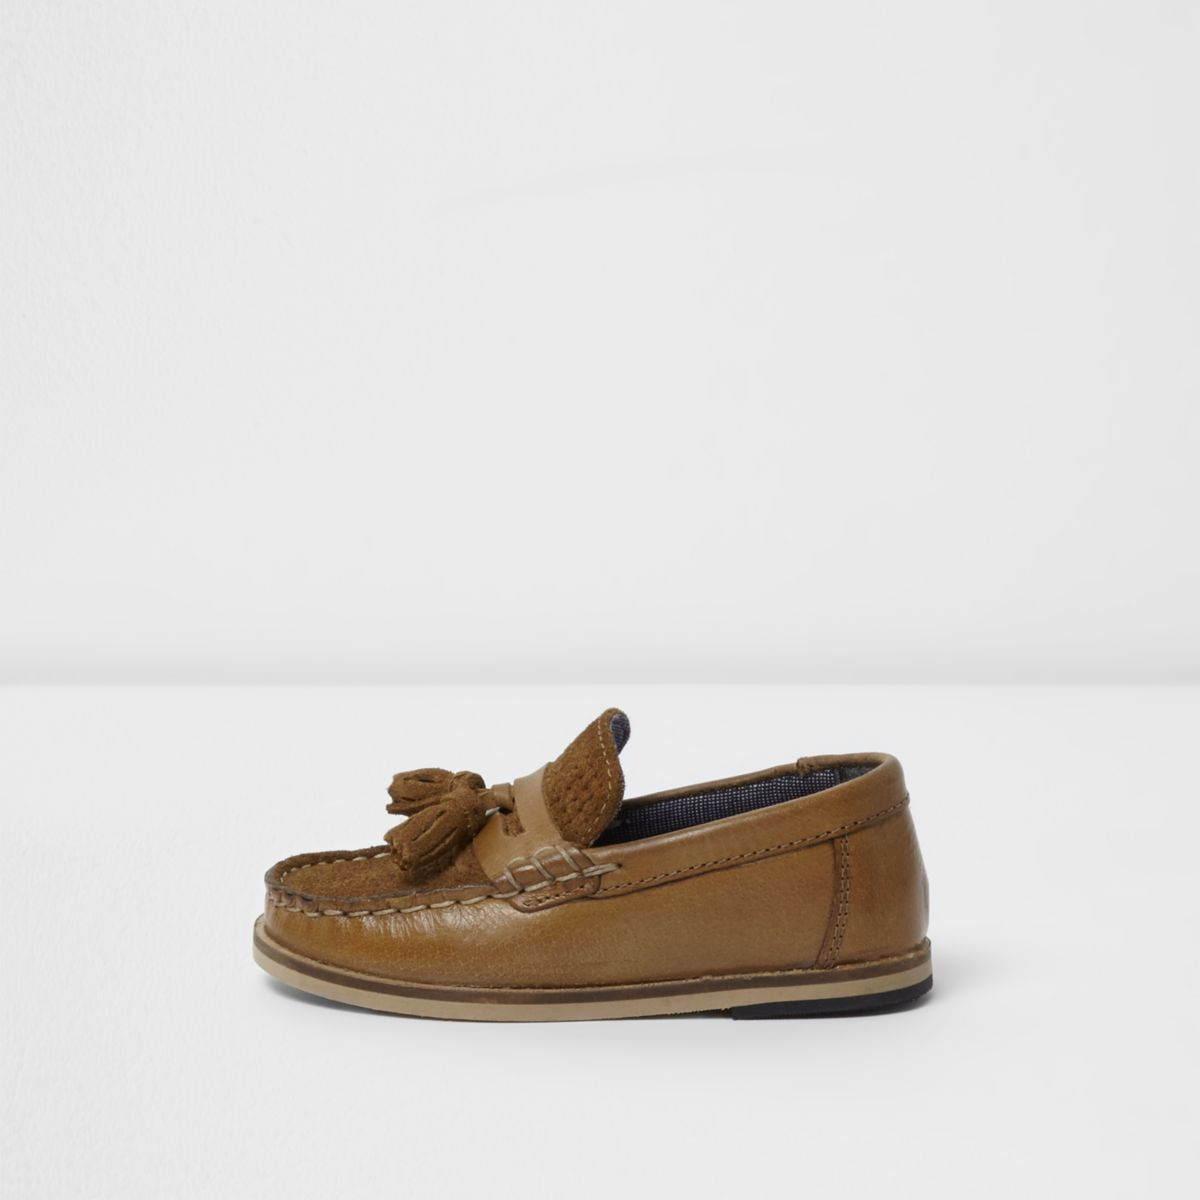 Find great deals on eBay for boys loafers shoes. Shop with confidence.